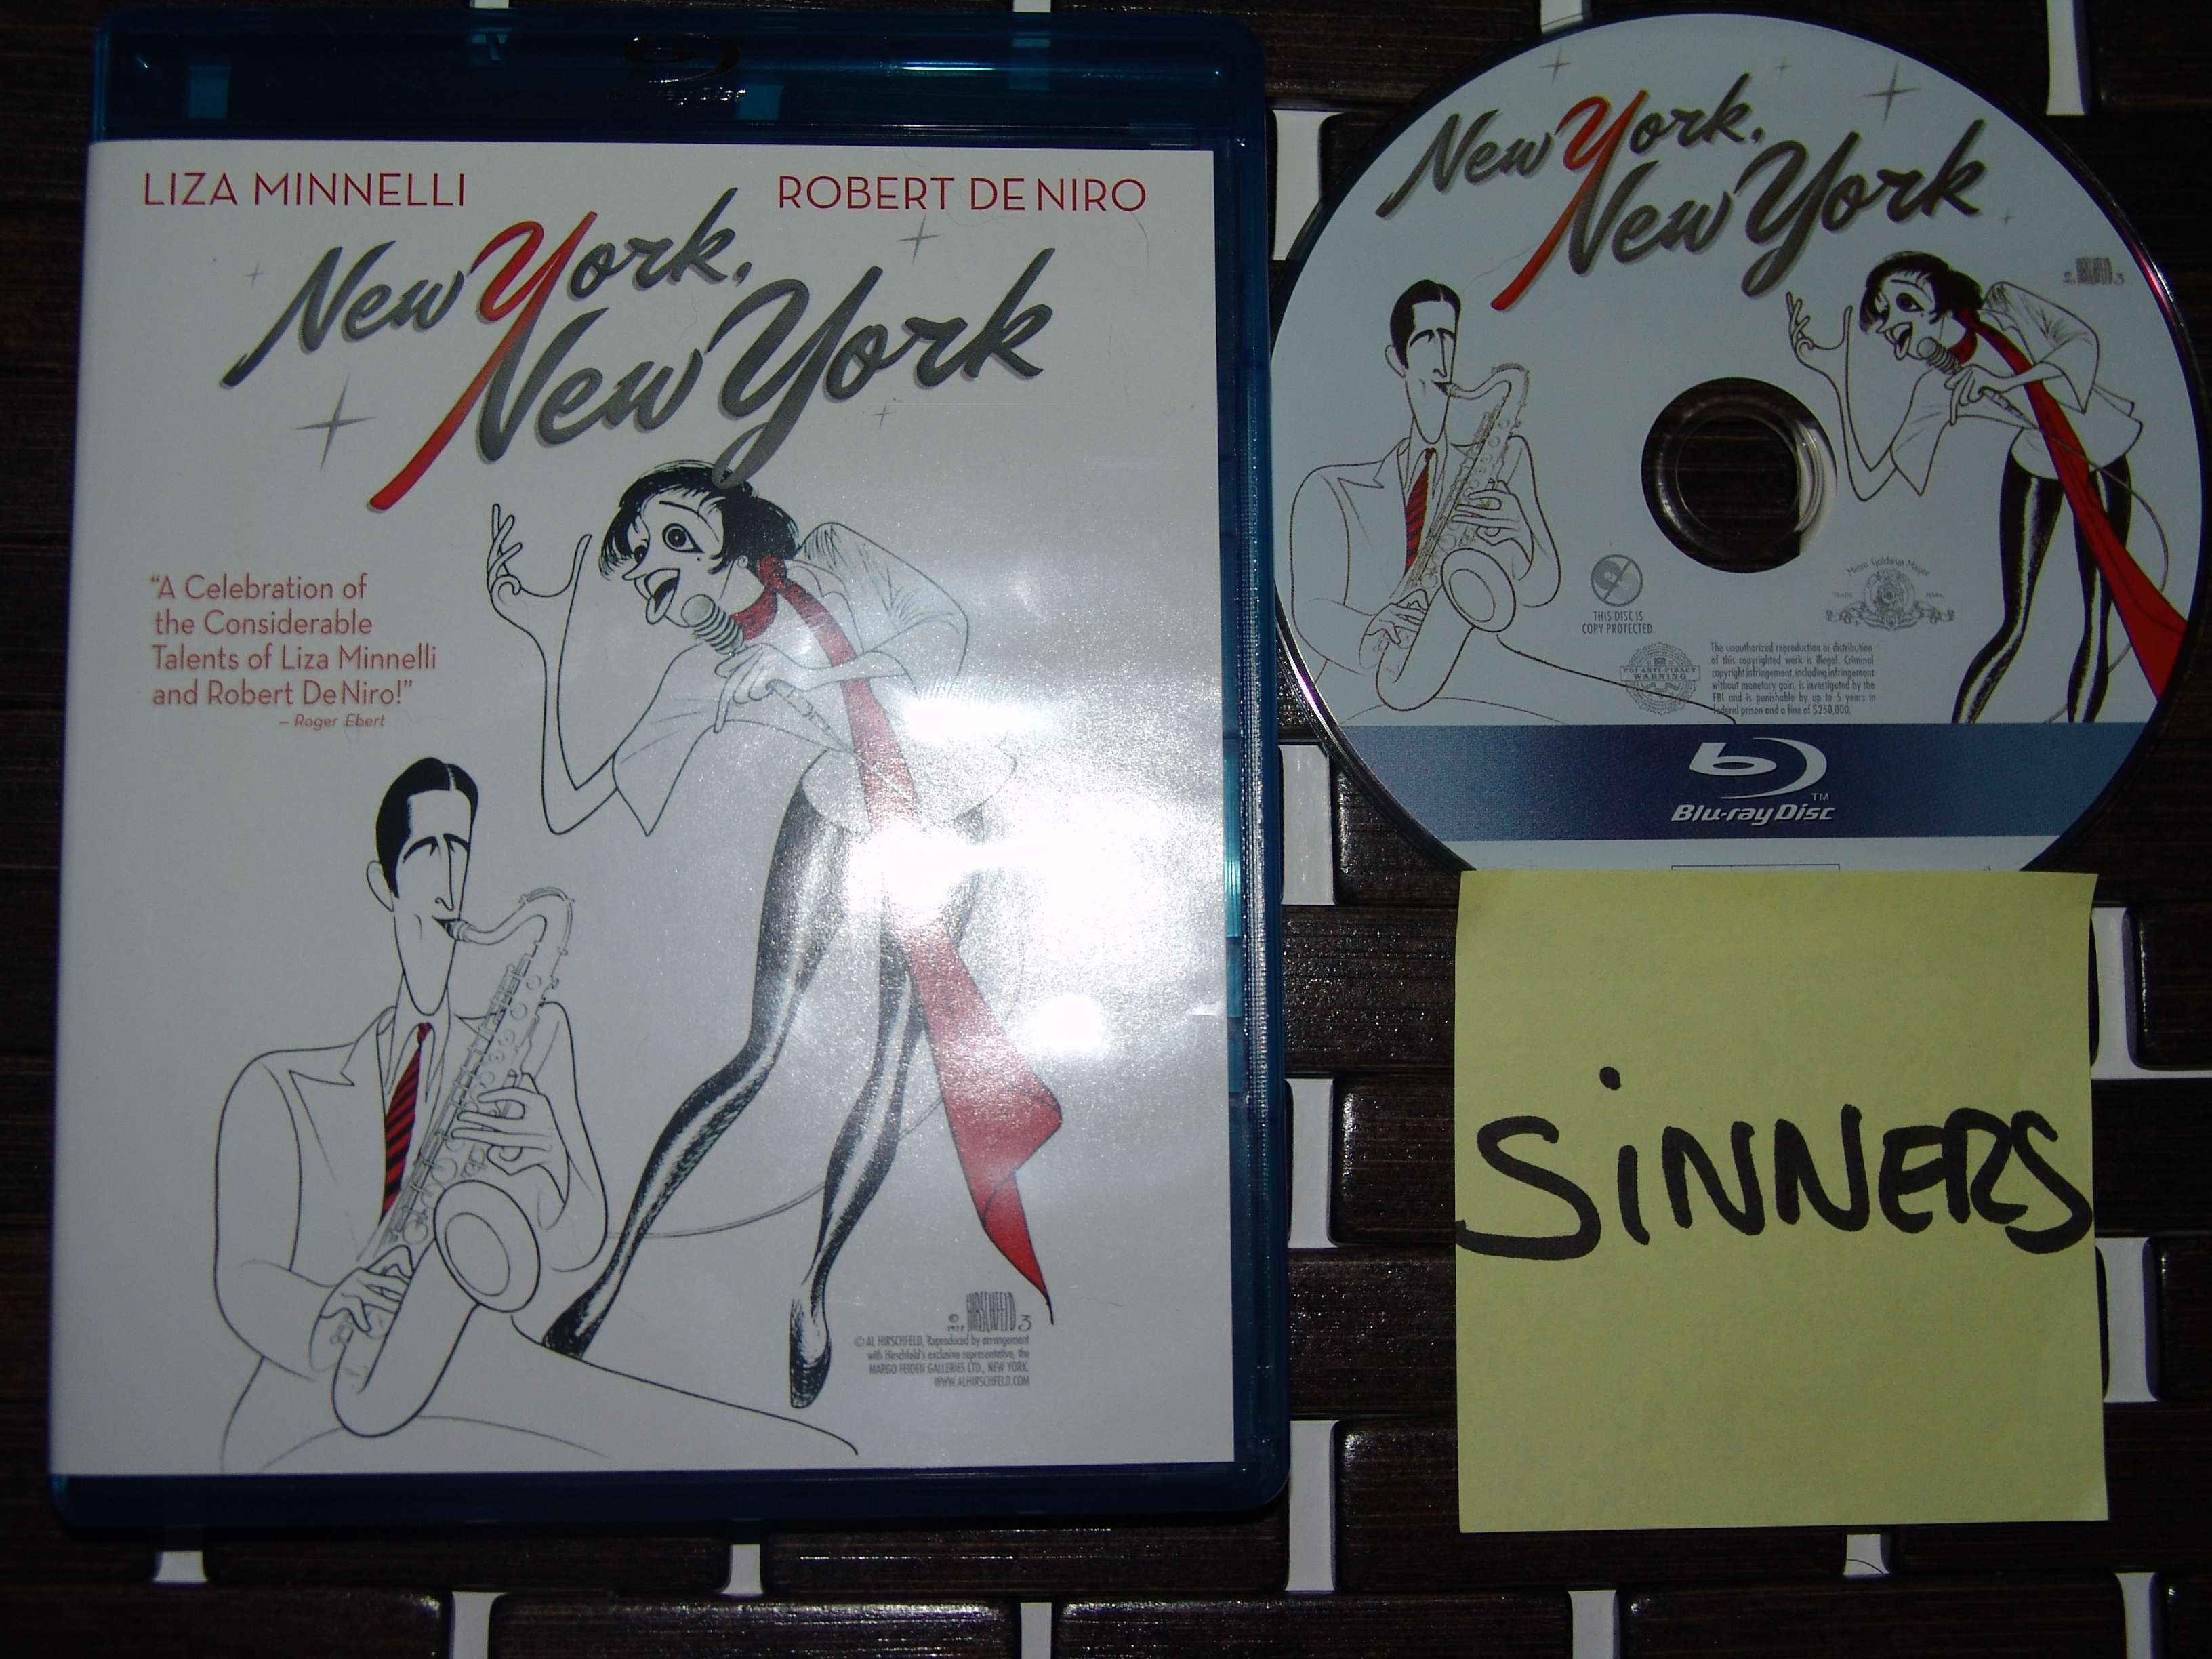 New York New York 1977 720p BluRay x264-SiNNERS